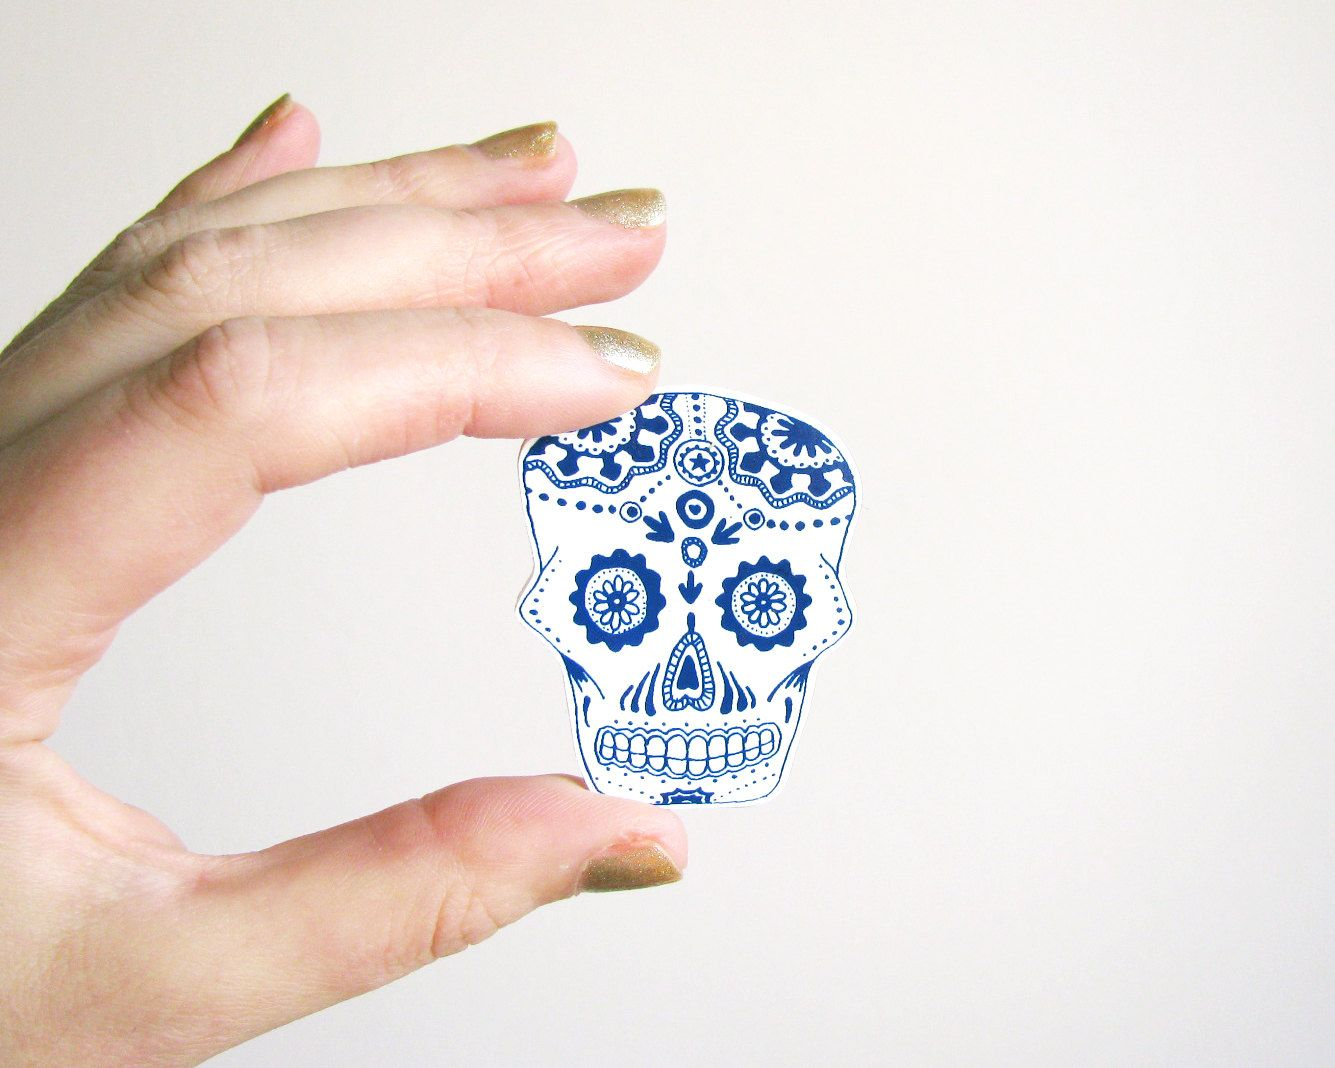 Dia de los Muertos brooch Calavera blue skull shrinking plastic jewelry handmade accessories gift for him or her halloween. €5.95, via Etsy.